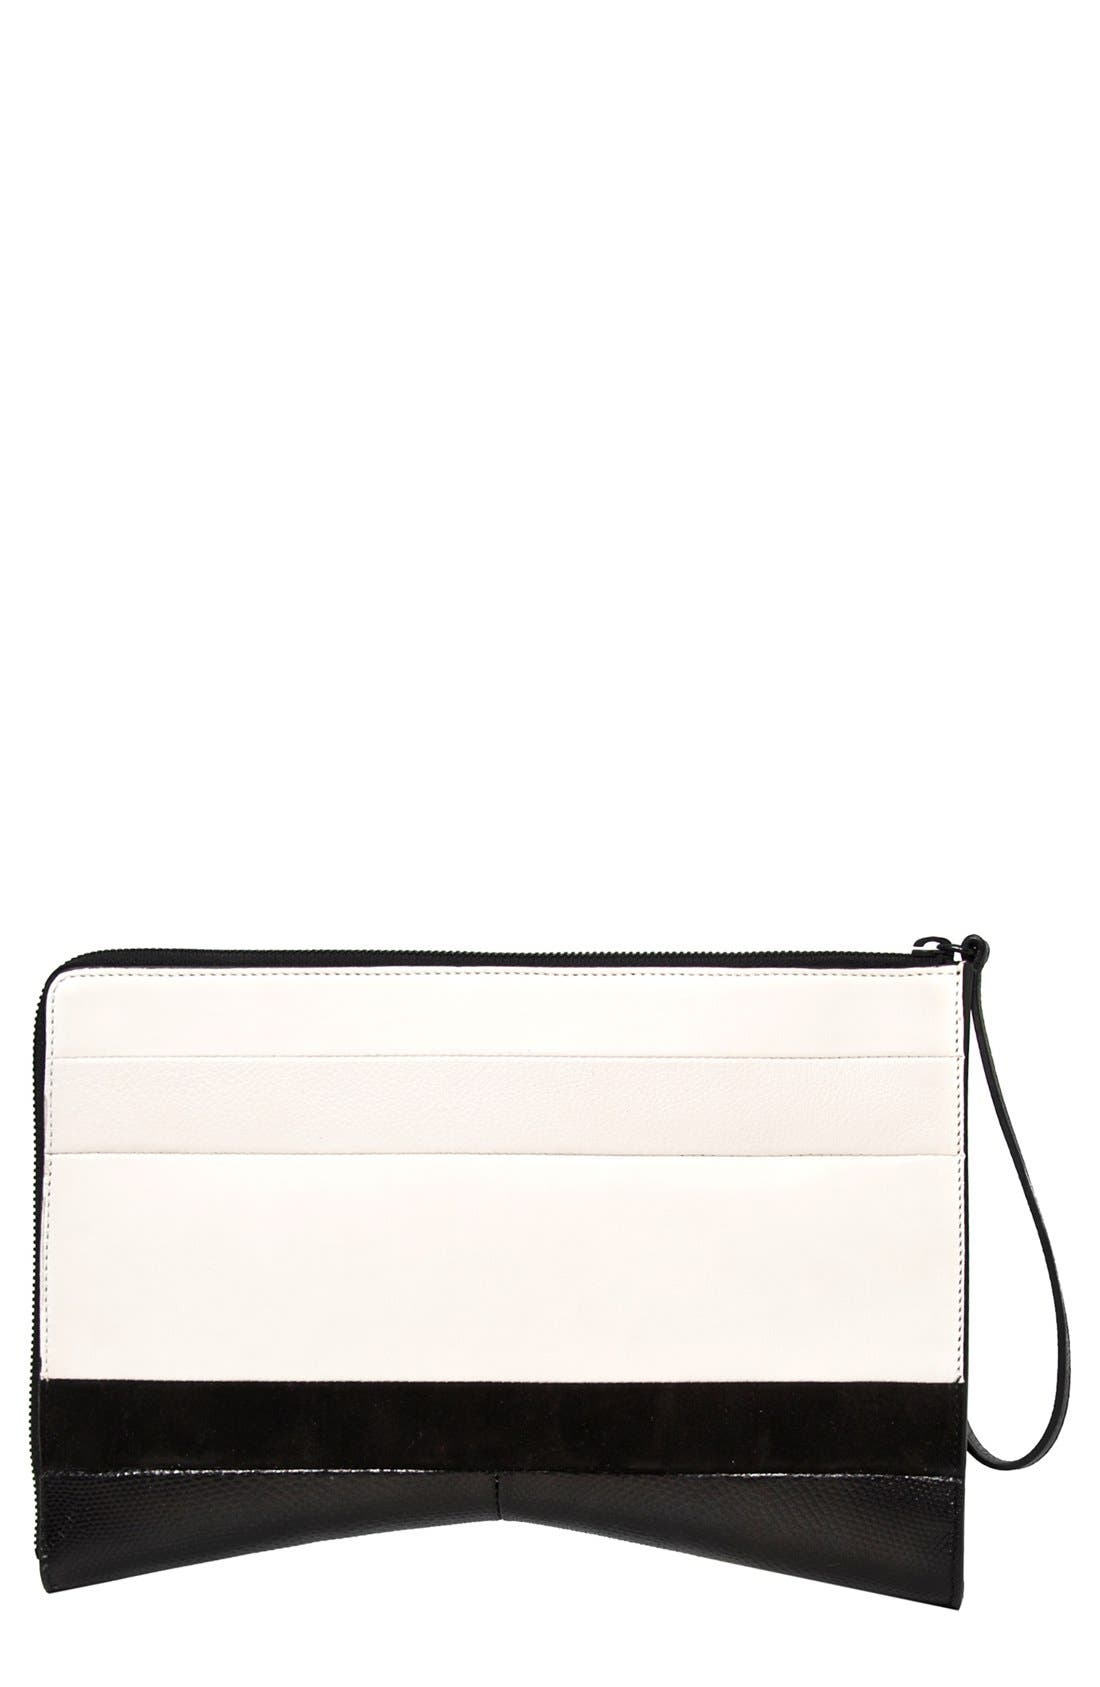 Main Image - Narciso Rodriguez Leather & Suede Clutch